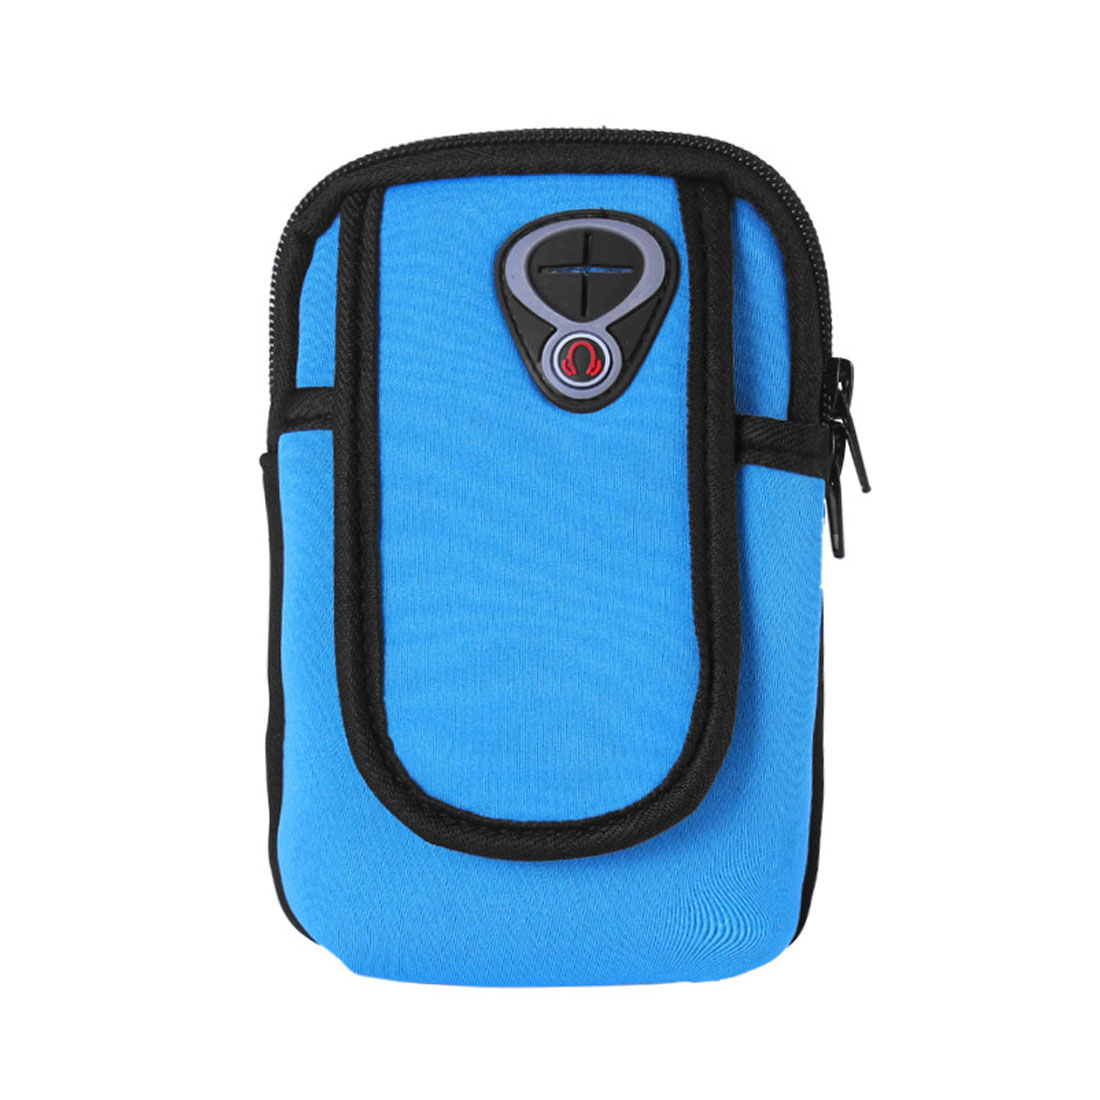 Blue Phone Key MP3 Wallet Pouch Sports Running Arm Package Band Bag Case Cover Storage